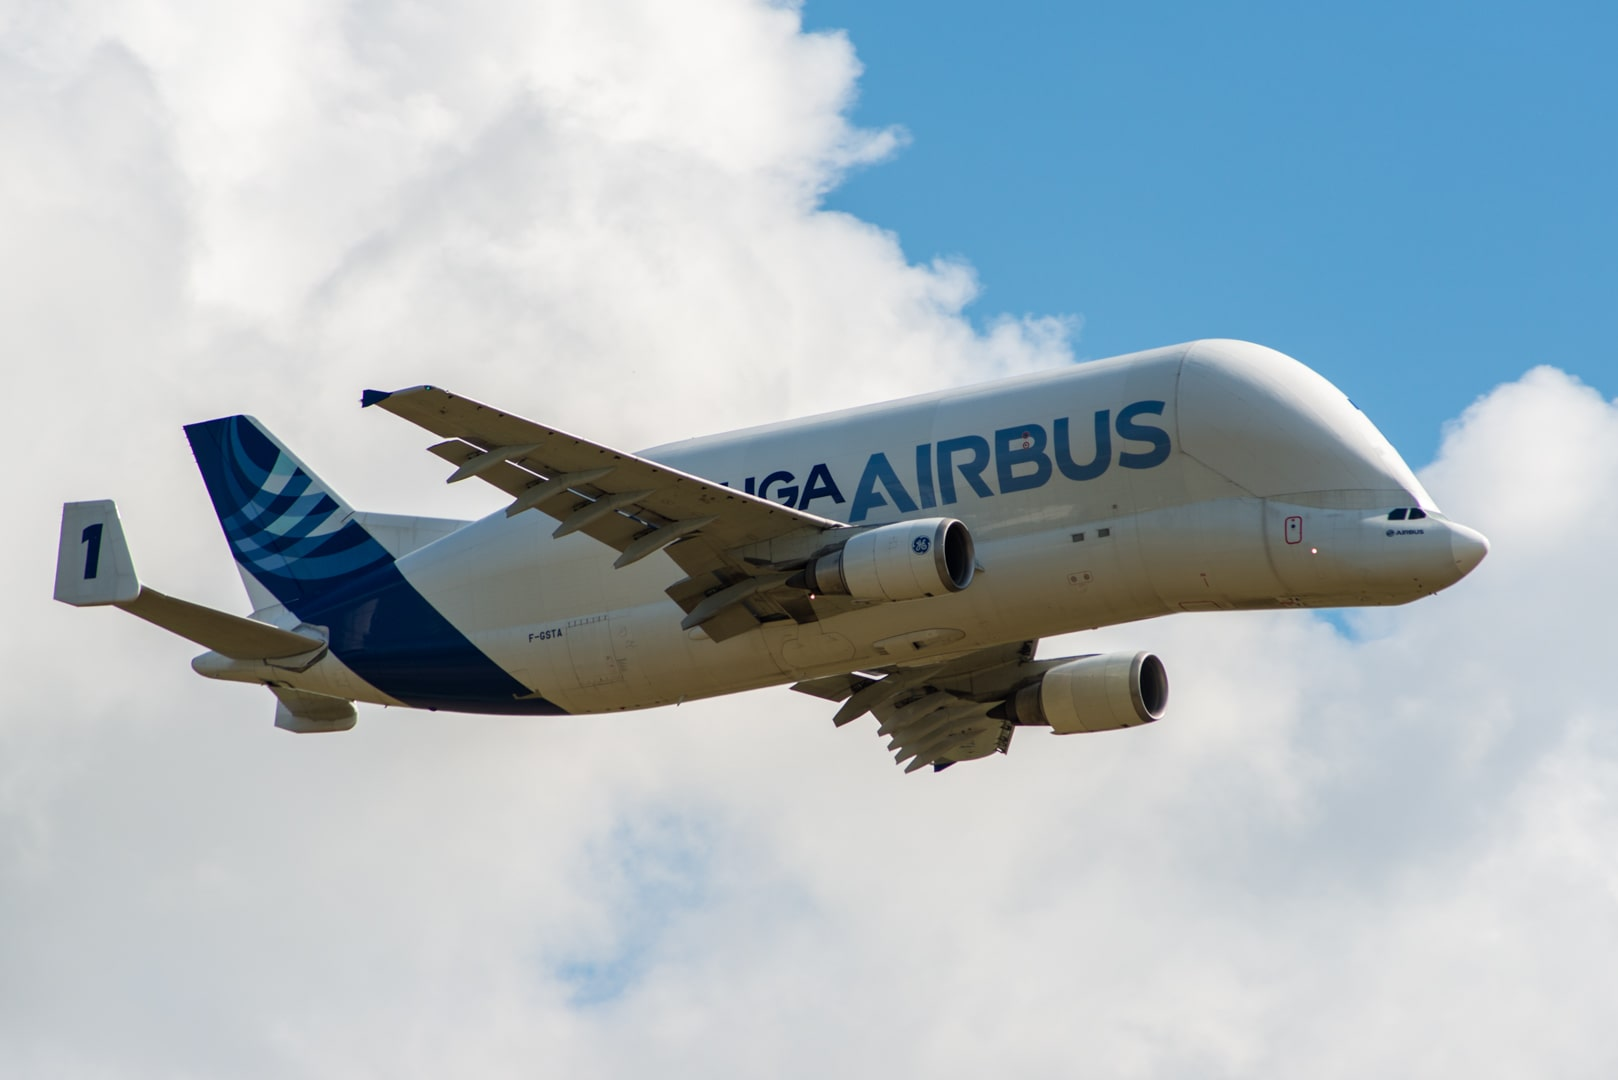 Photo d'avion le Beluga de Airbus lors du meeting aérien sur Toulouse ( Lherm) 2